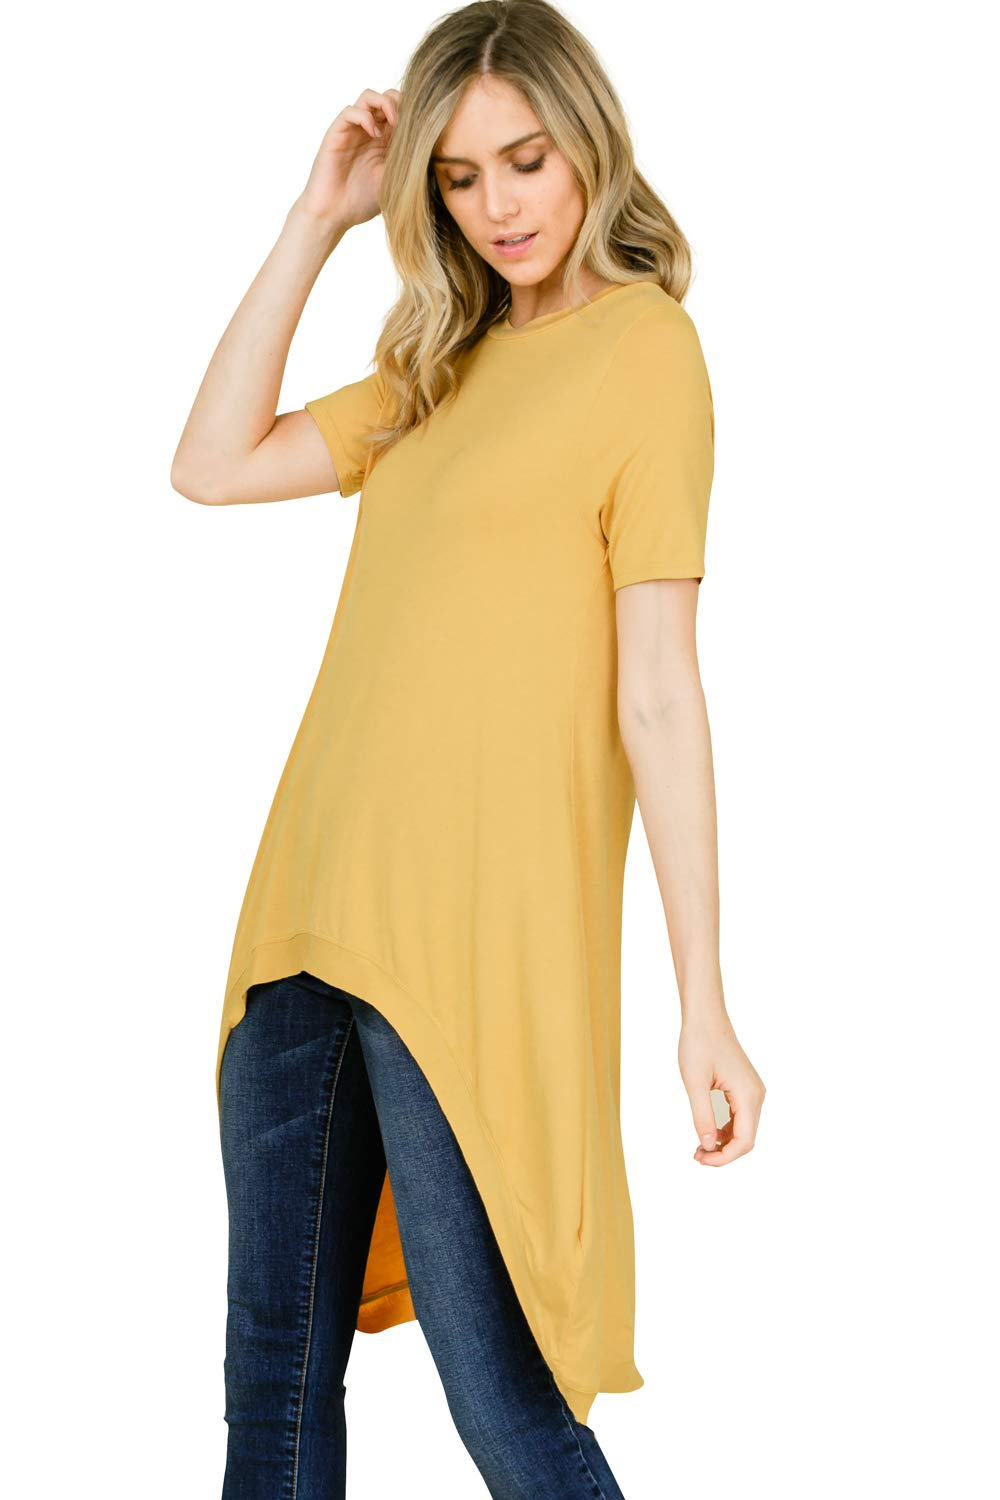 Annabelle Women's Plus Size Hi Low Hem Round Neck Short Sleeved Solid Loose and Relaxed Top Mustard XXX-Large T1178